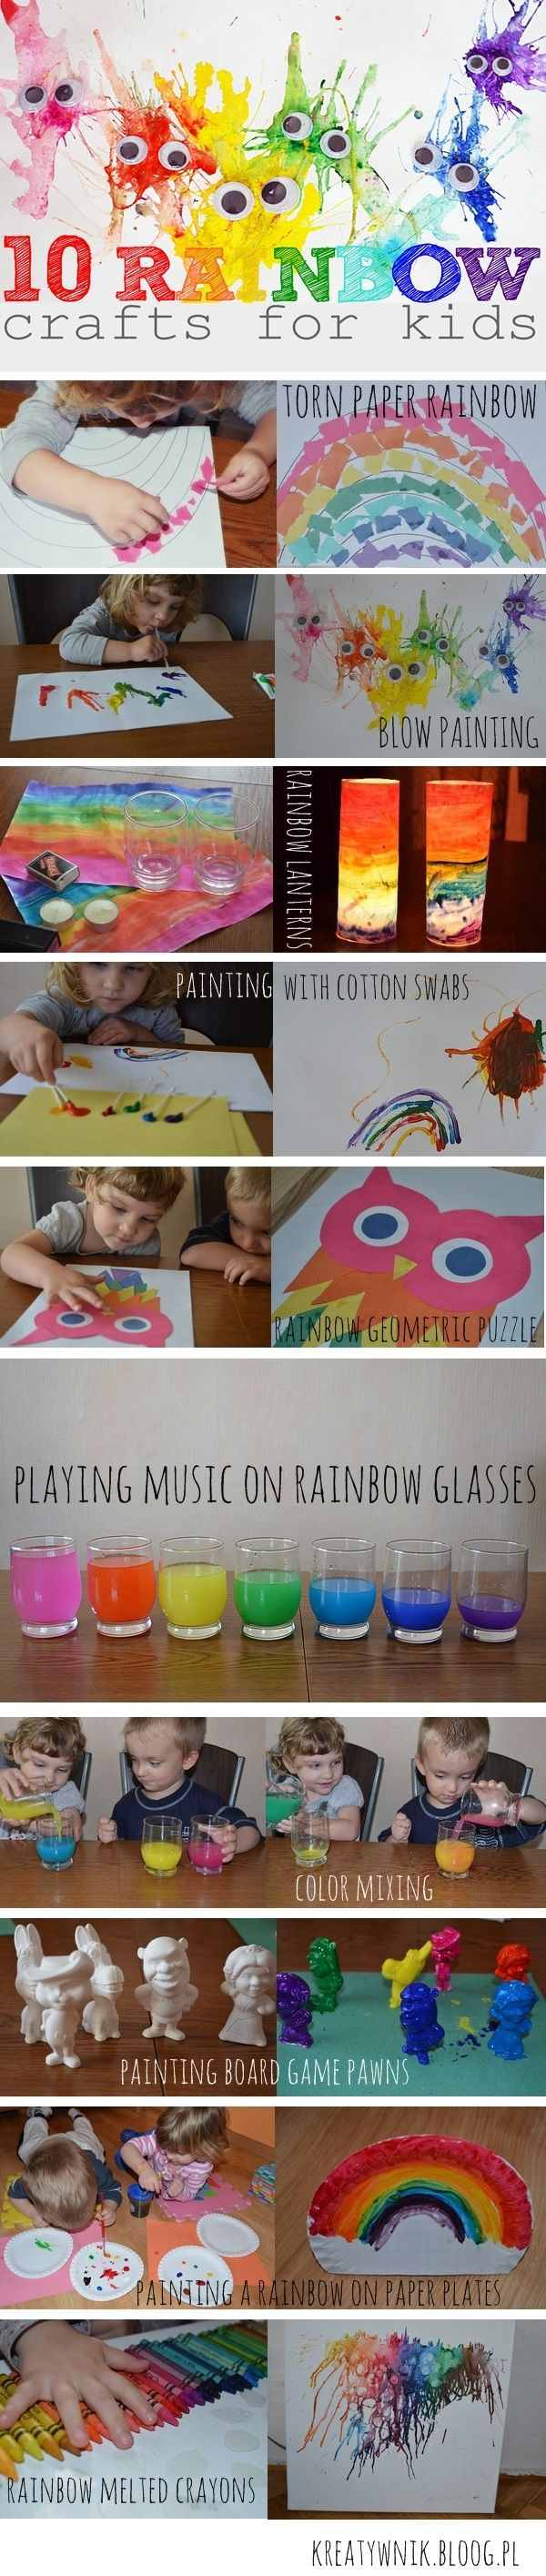 There are so many things we can do to create a rainbow. Here are some our samples: torn paper rainbow, rainbow blow painting, rainbow lanterns, painting rainbow with cotton swabs, rainbow geometric puzzle, playing music on rainbow glasses, color mixing, painting board game pawns, painting a rainbow on a paper plates, rainbow melted crayons...